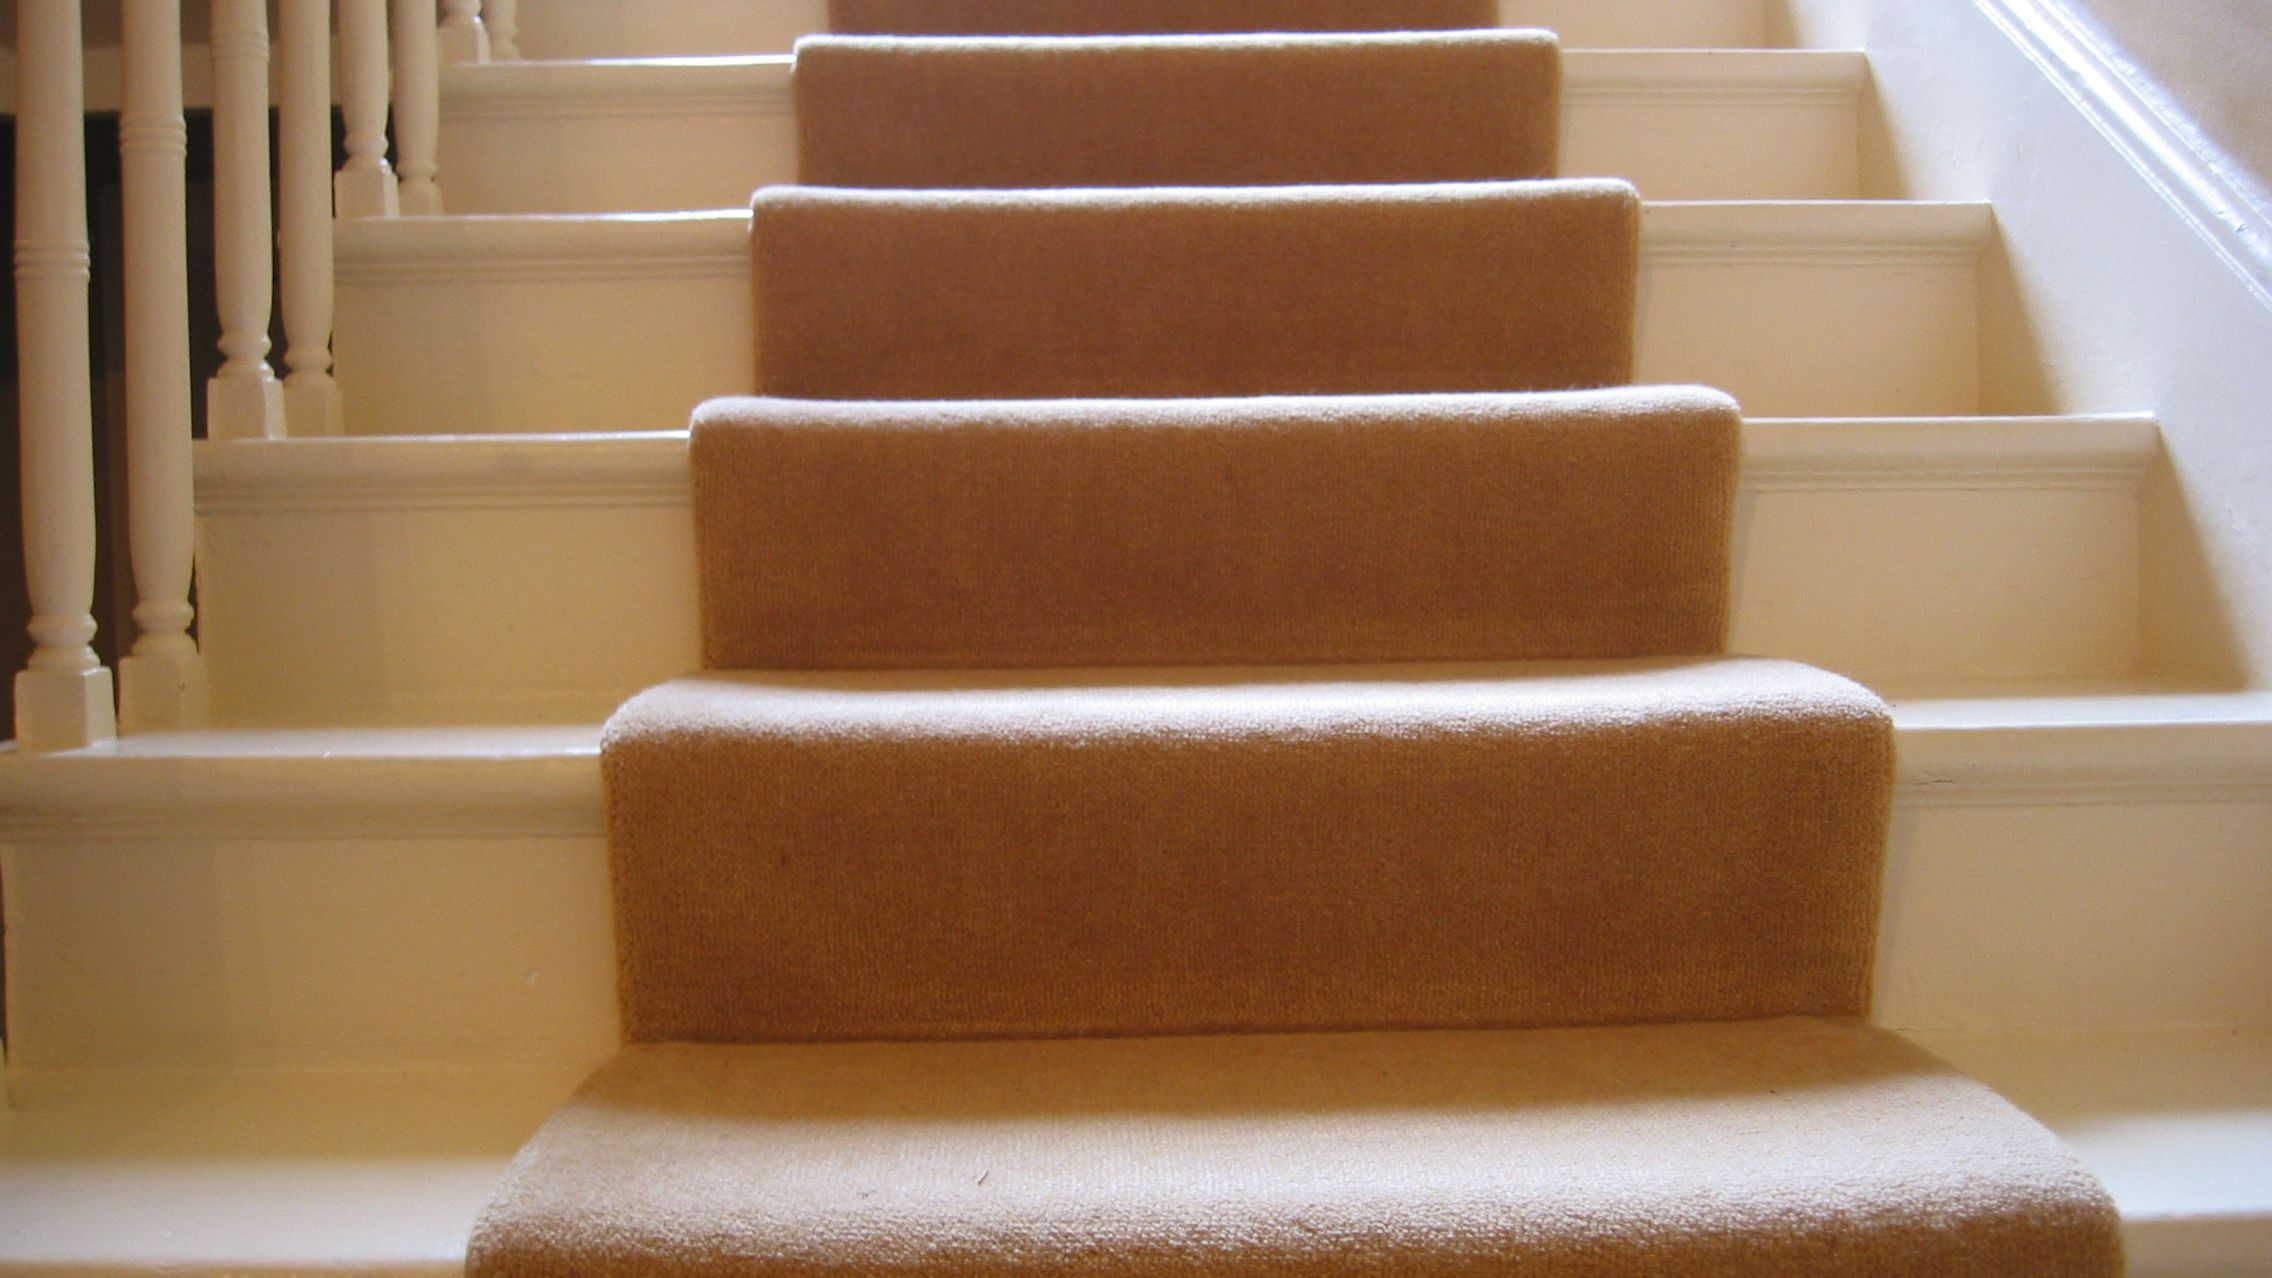 Guide To Choosing A Carpet Runner For Stairs   Ready Made Outdoor Steps   Support   Creative   Patio   Design   Craigslist